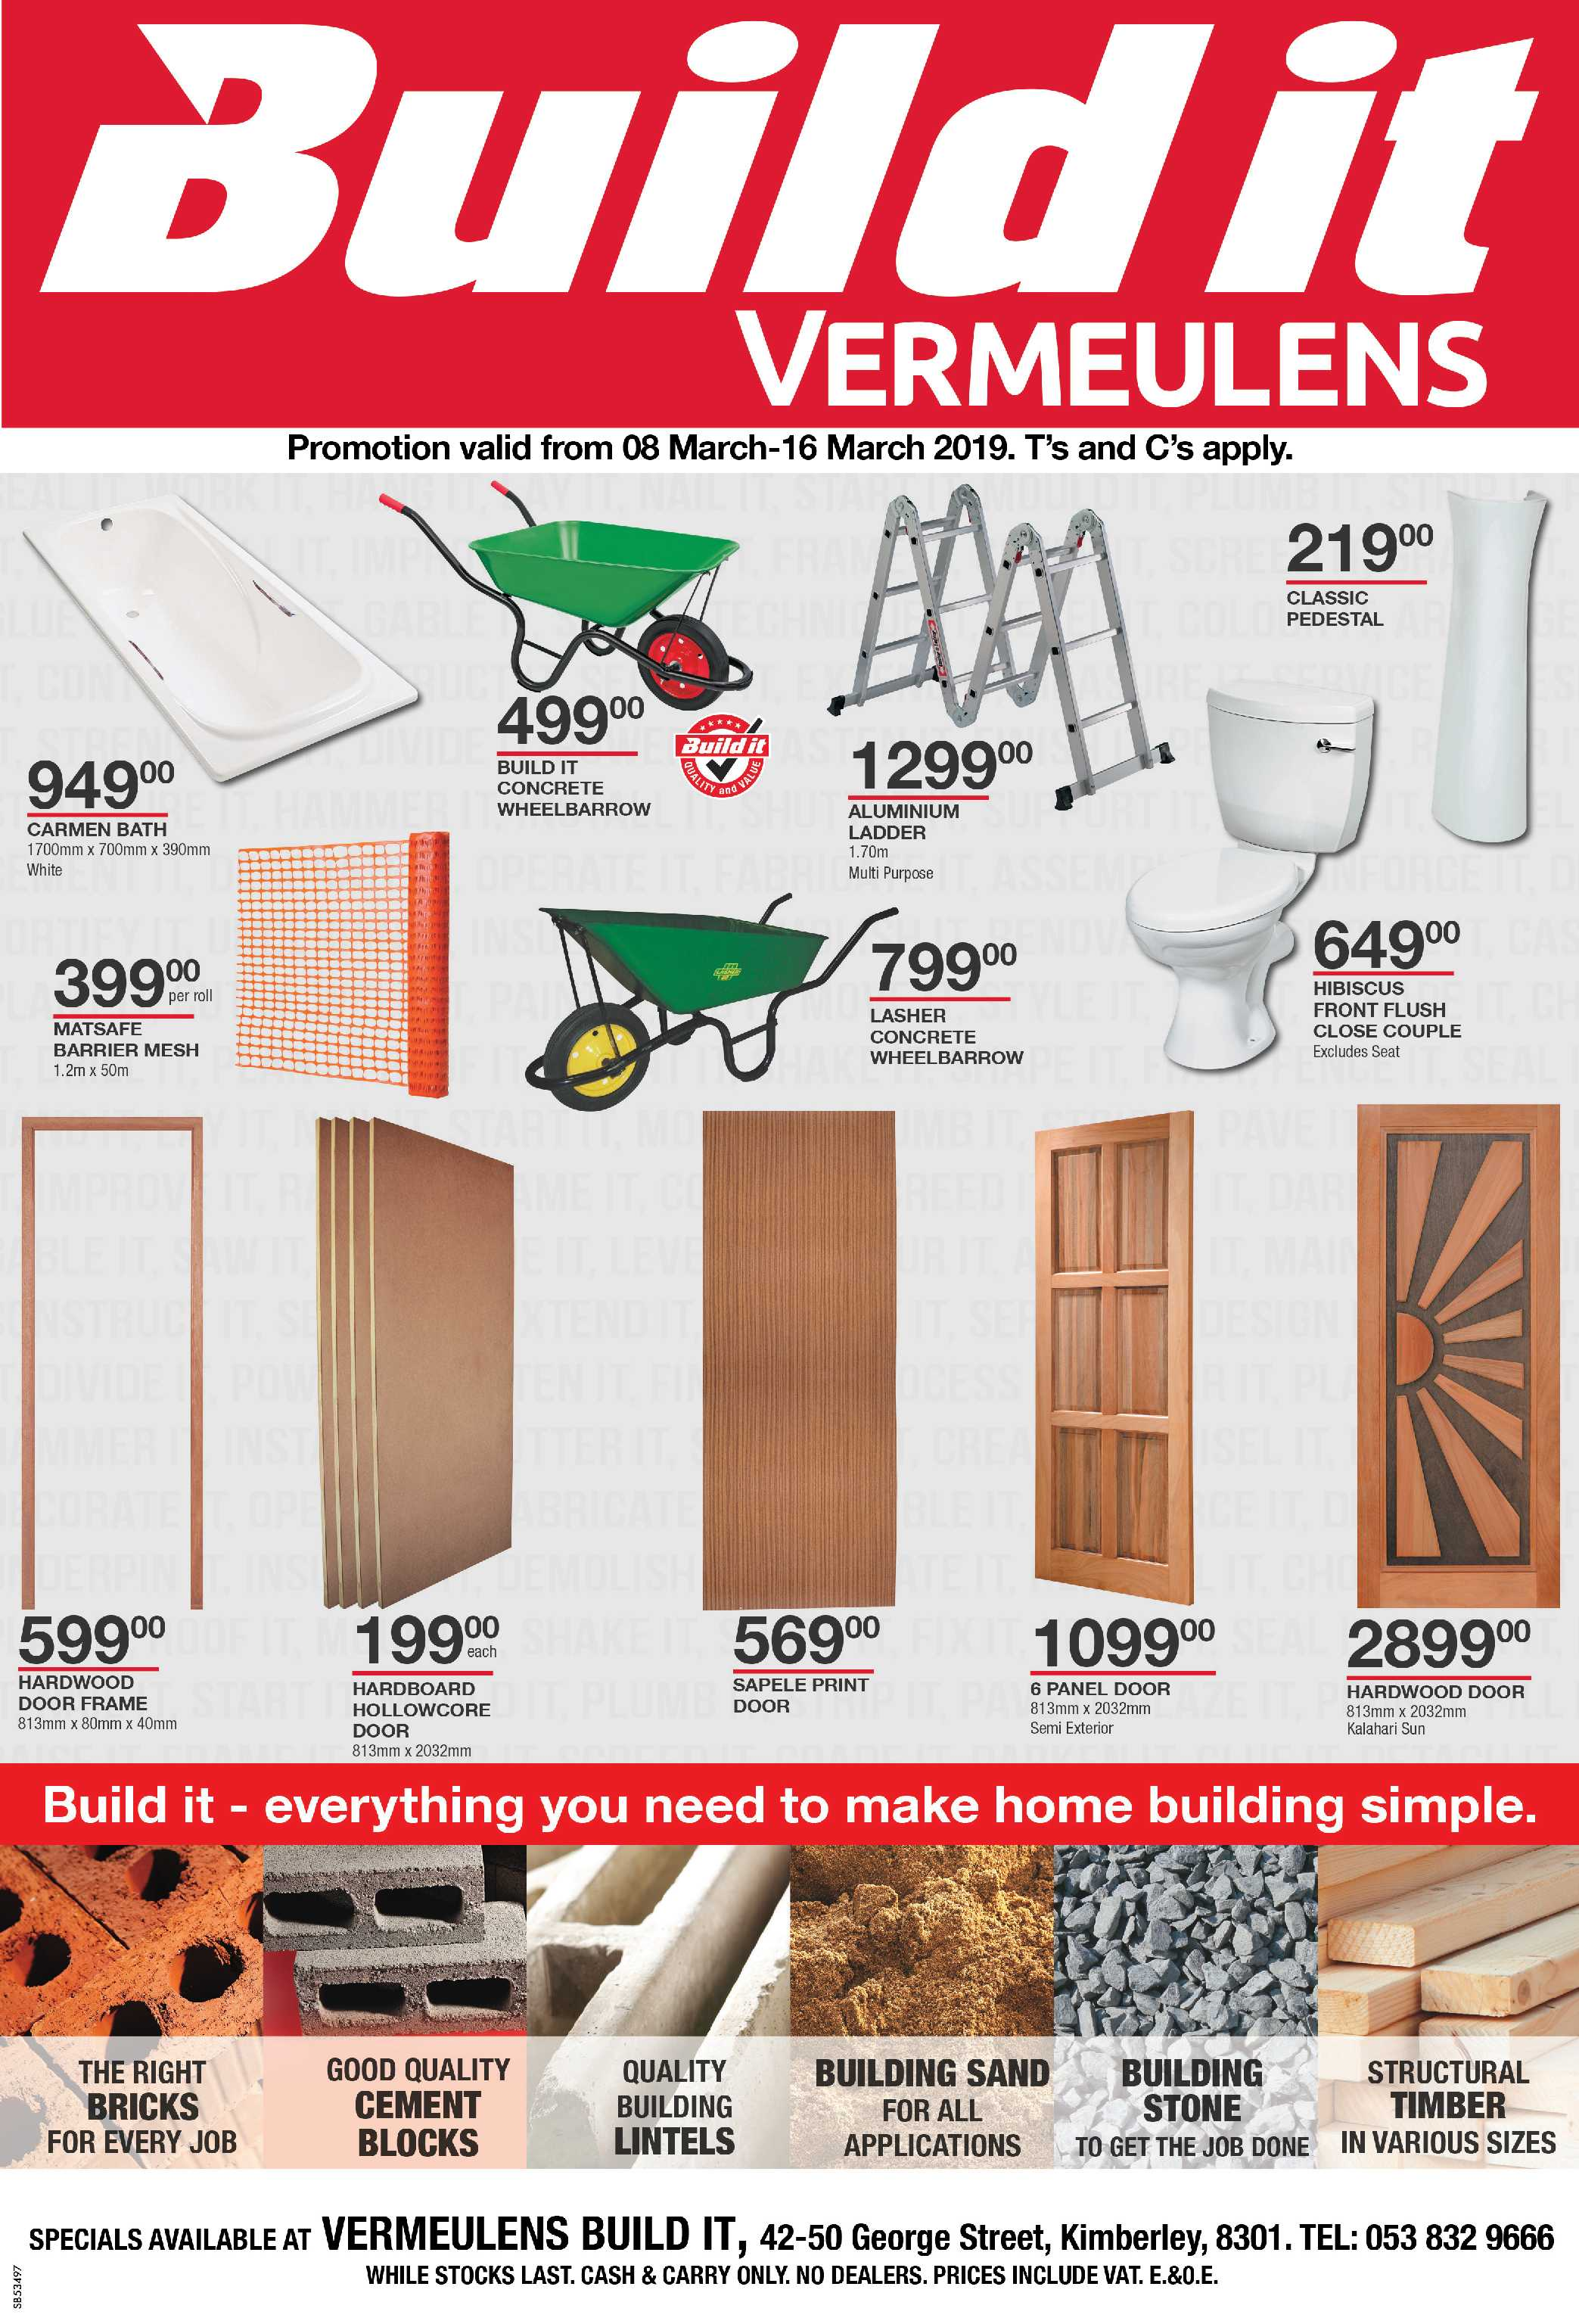 VERMEULENS_BUILD_IT_PRESS_ADVERT_20180308